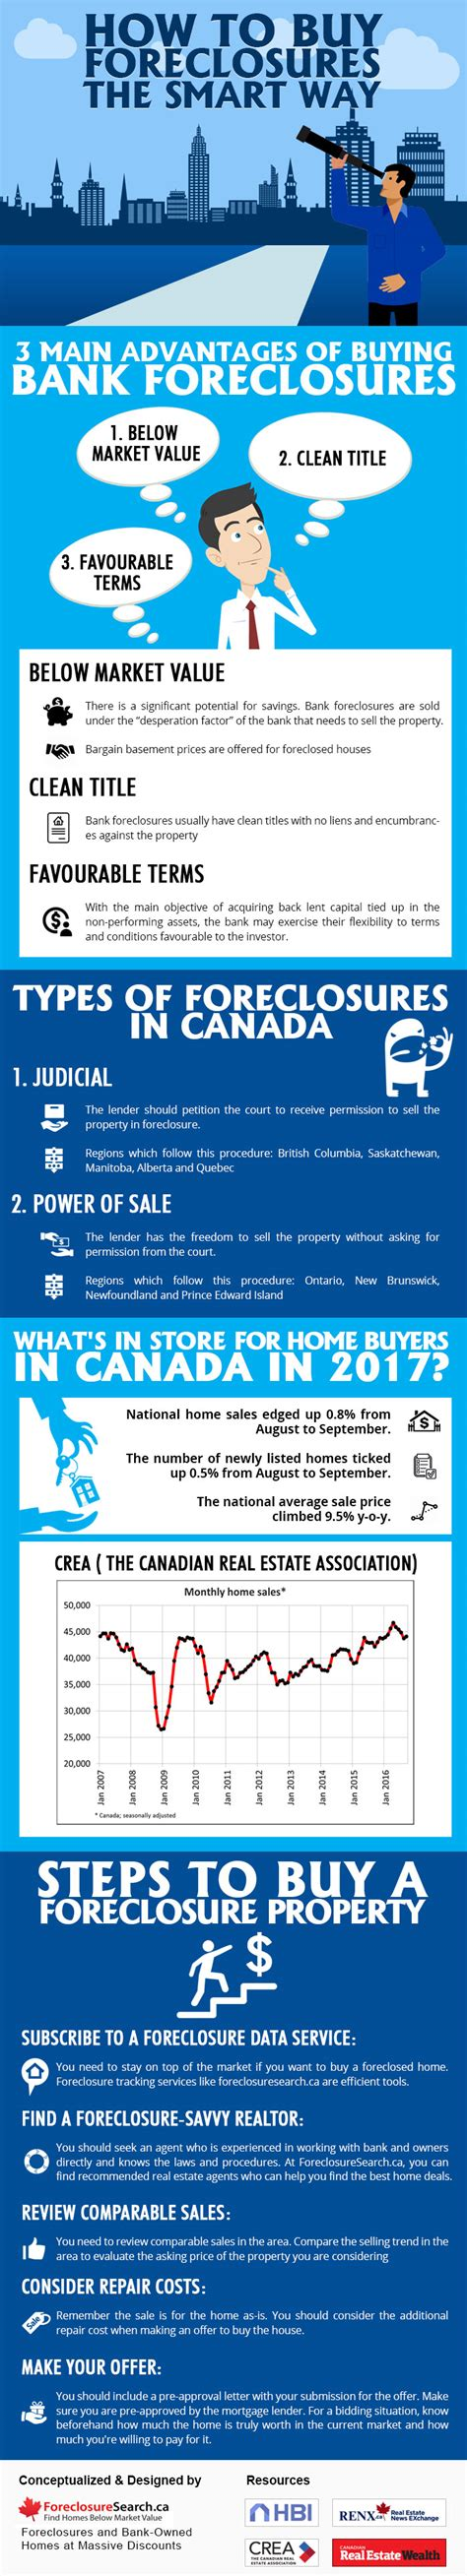 buy foreclosed houses how to buy foreclosures the smart way infographic foreclosure listings canada